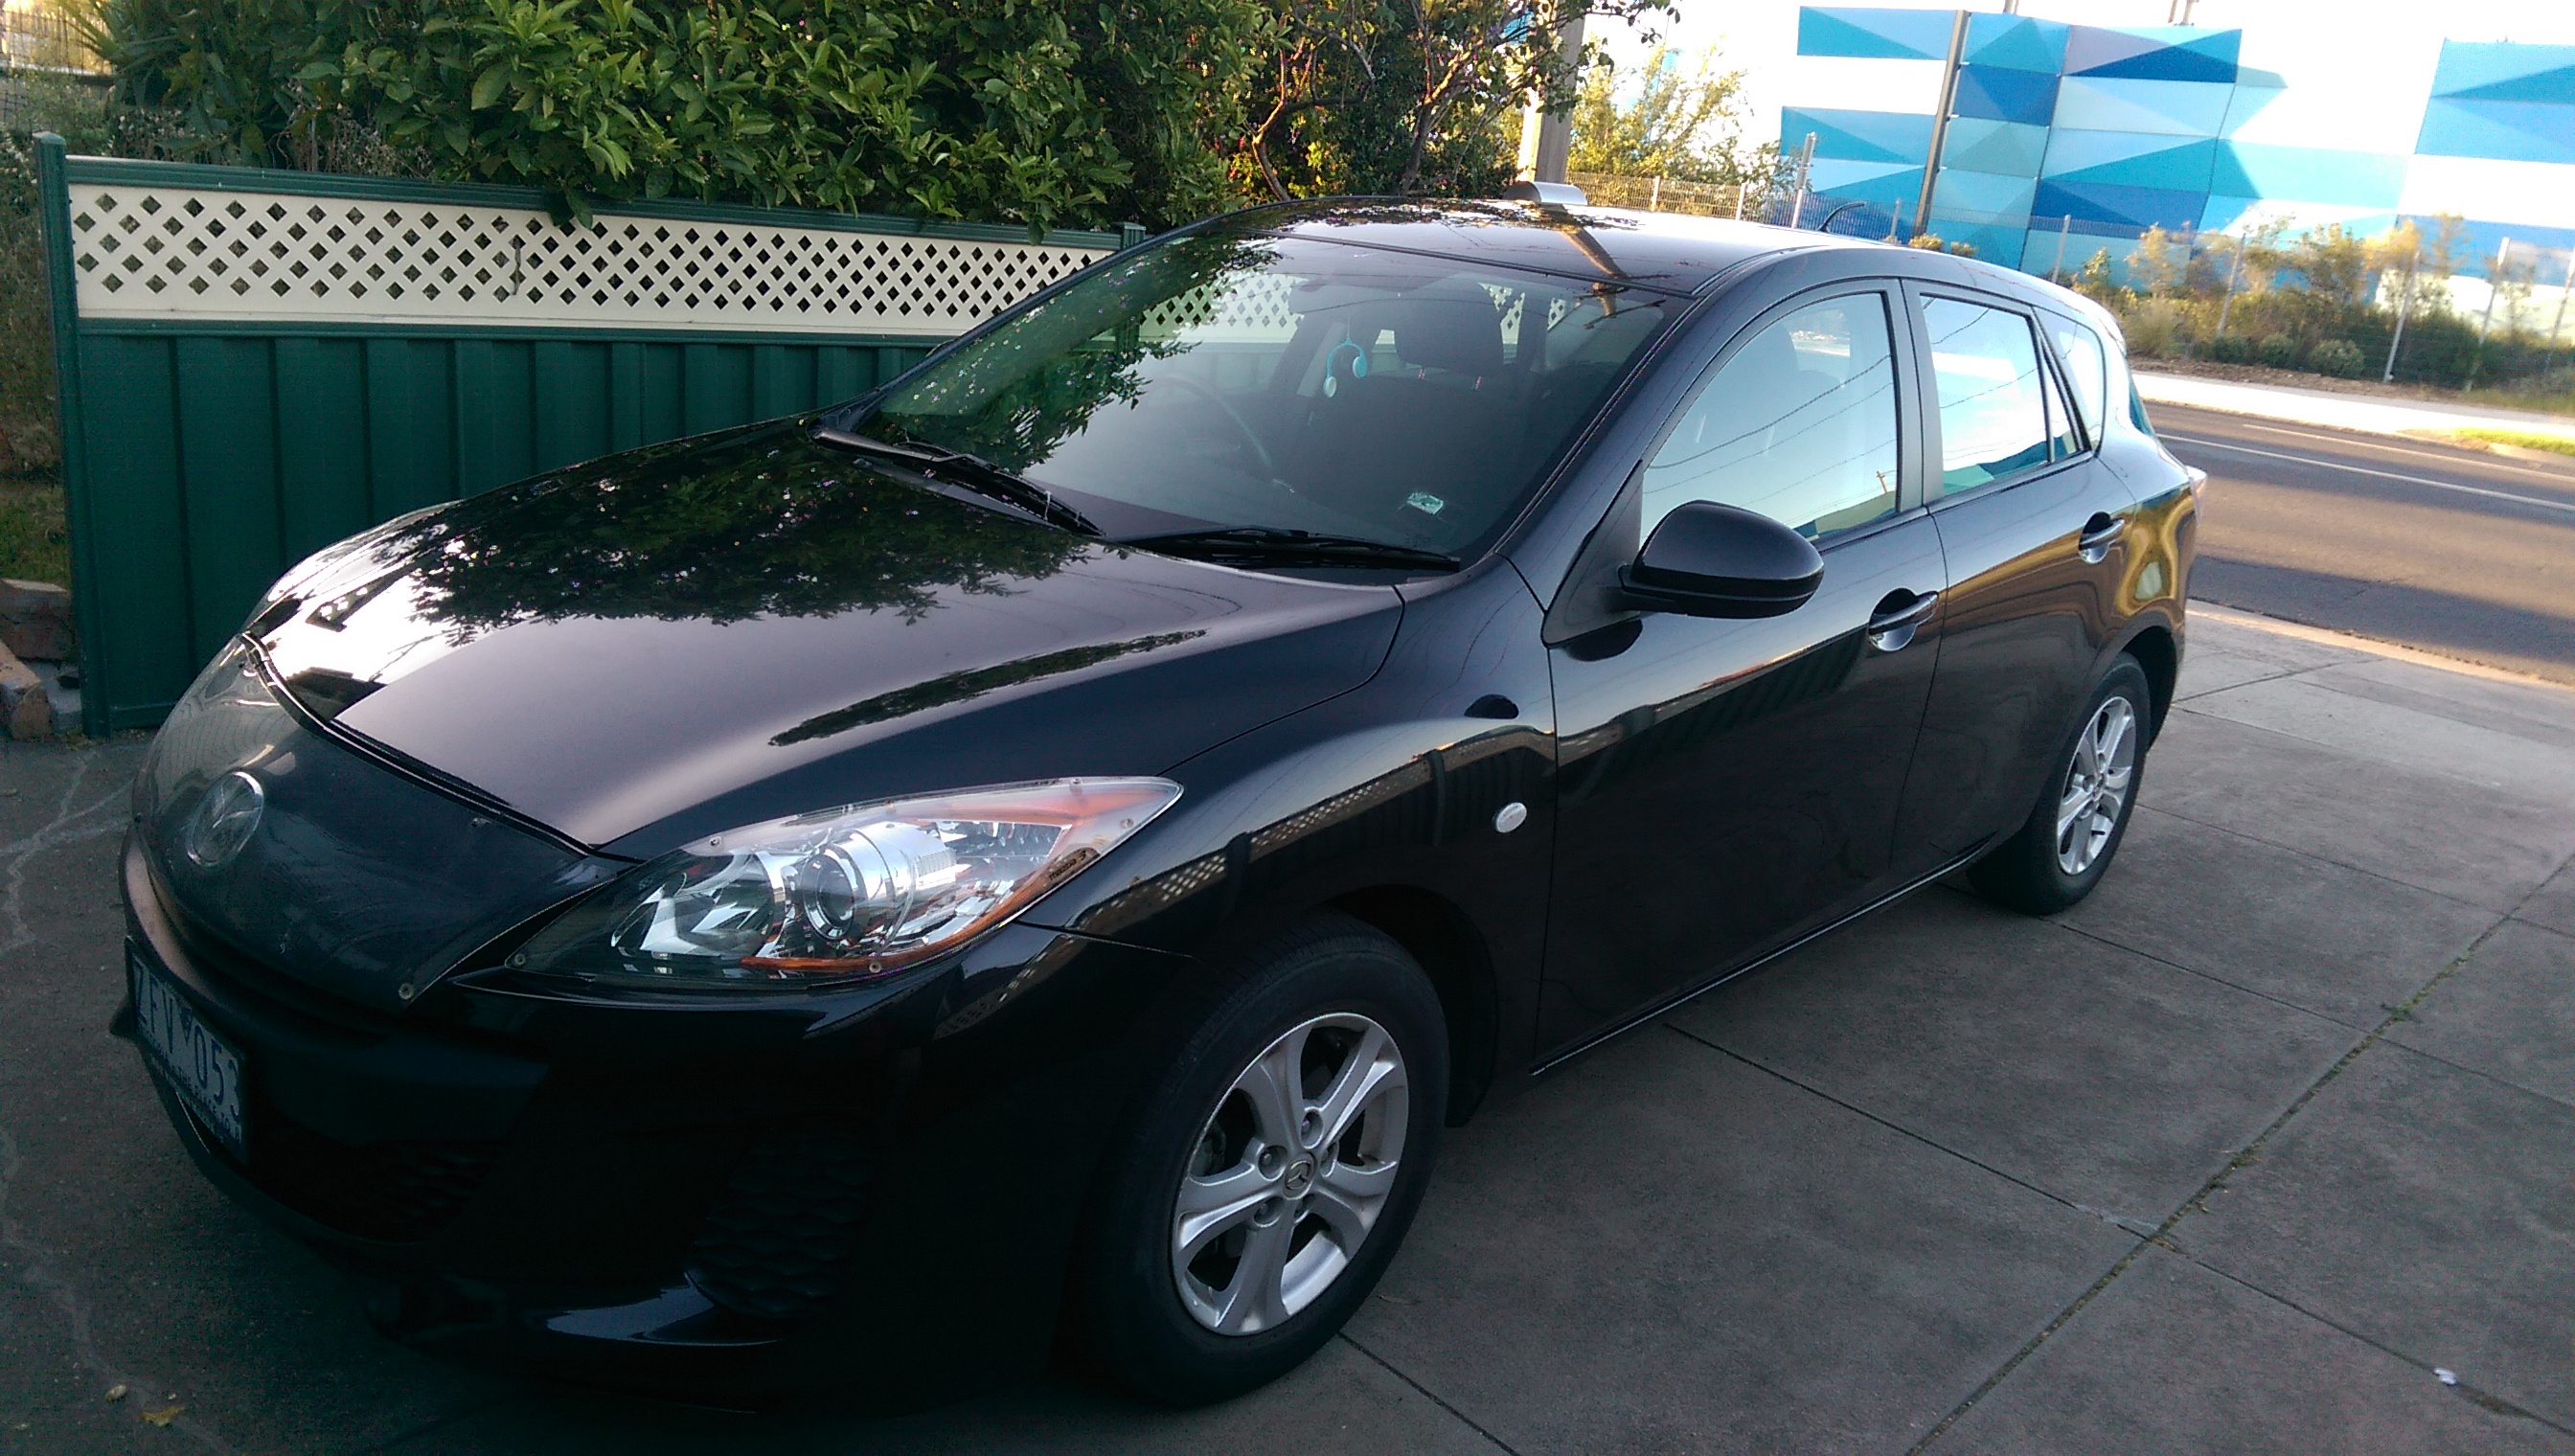 Picture of Pradeep's 2012 Mazda 3 neo